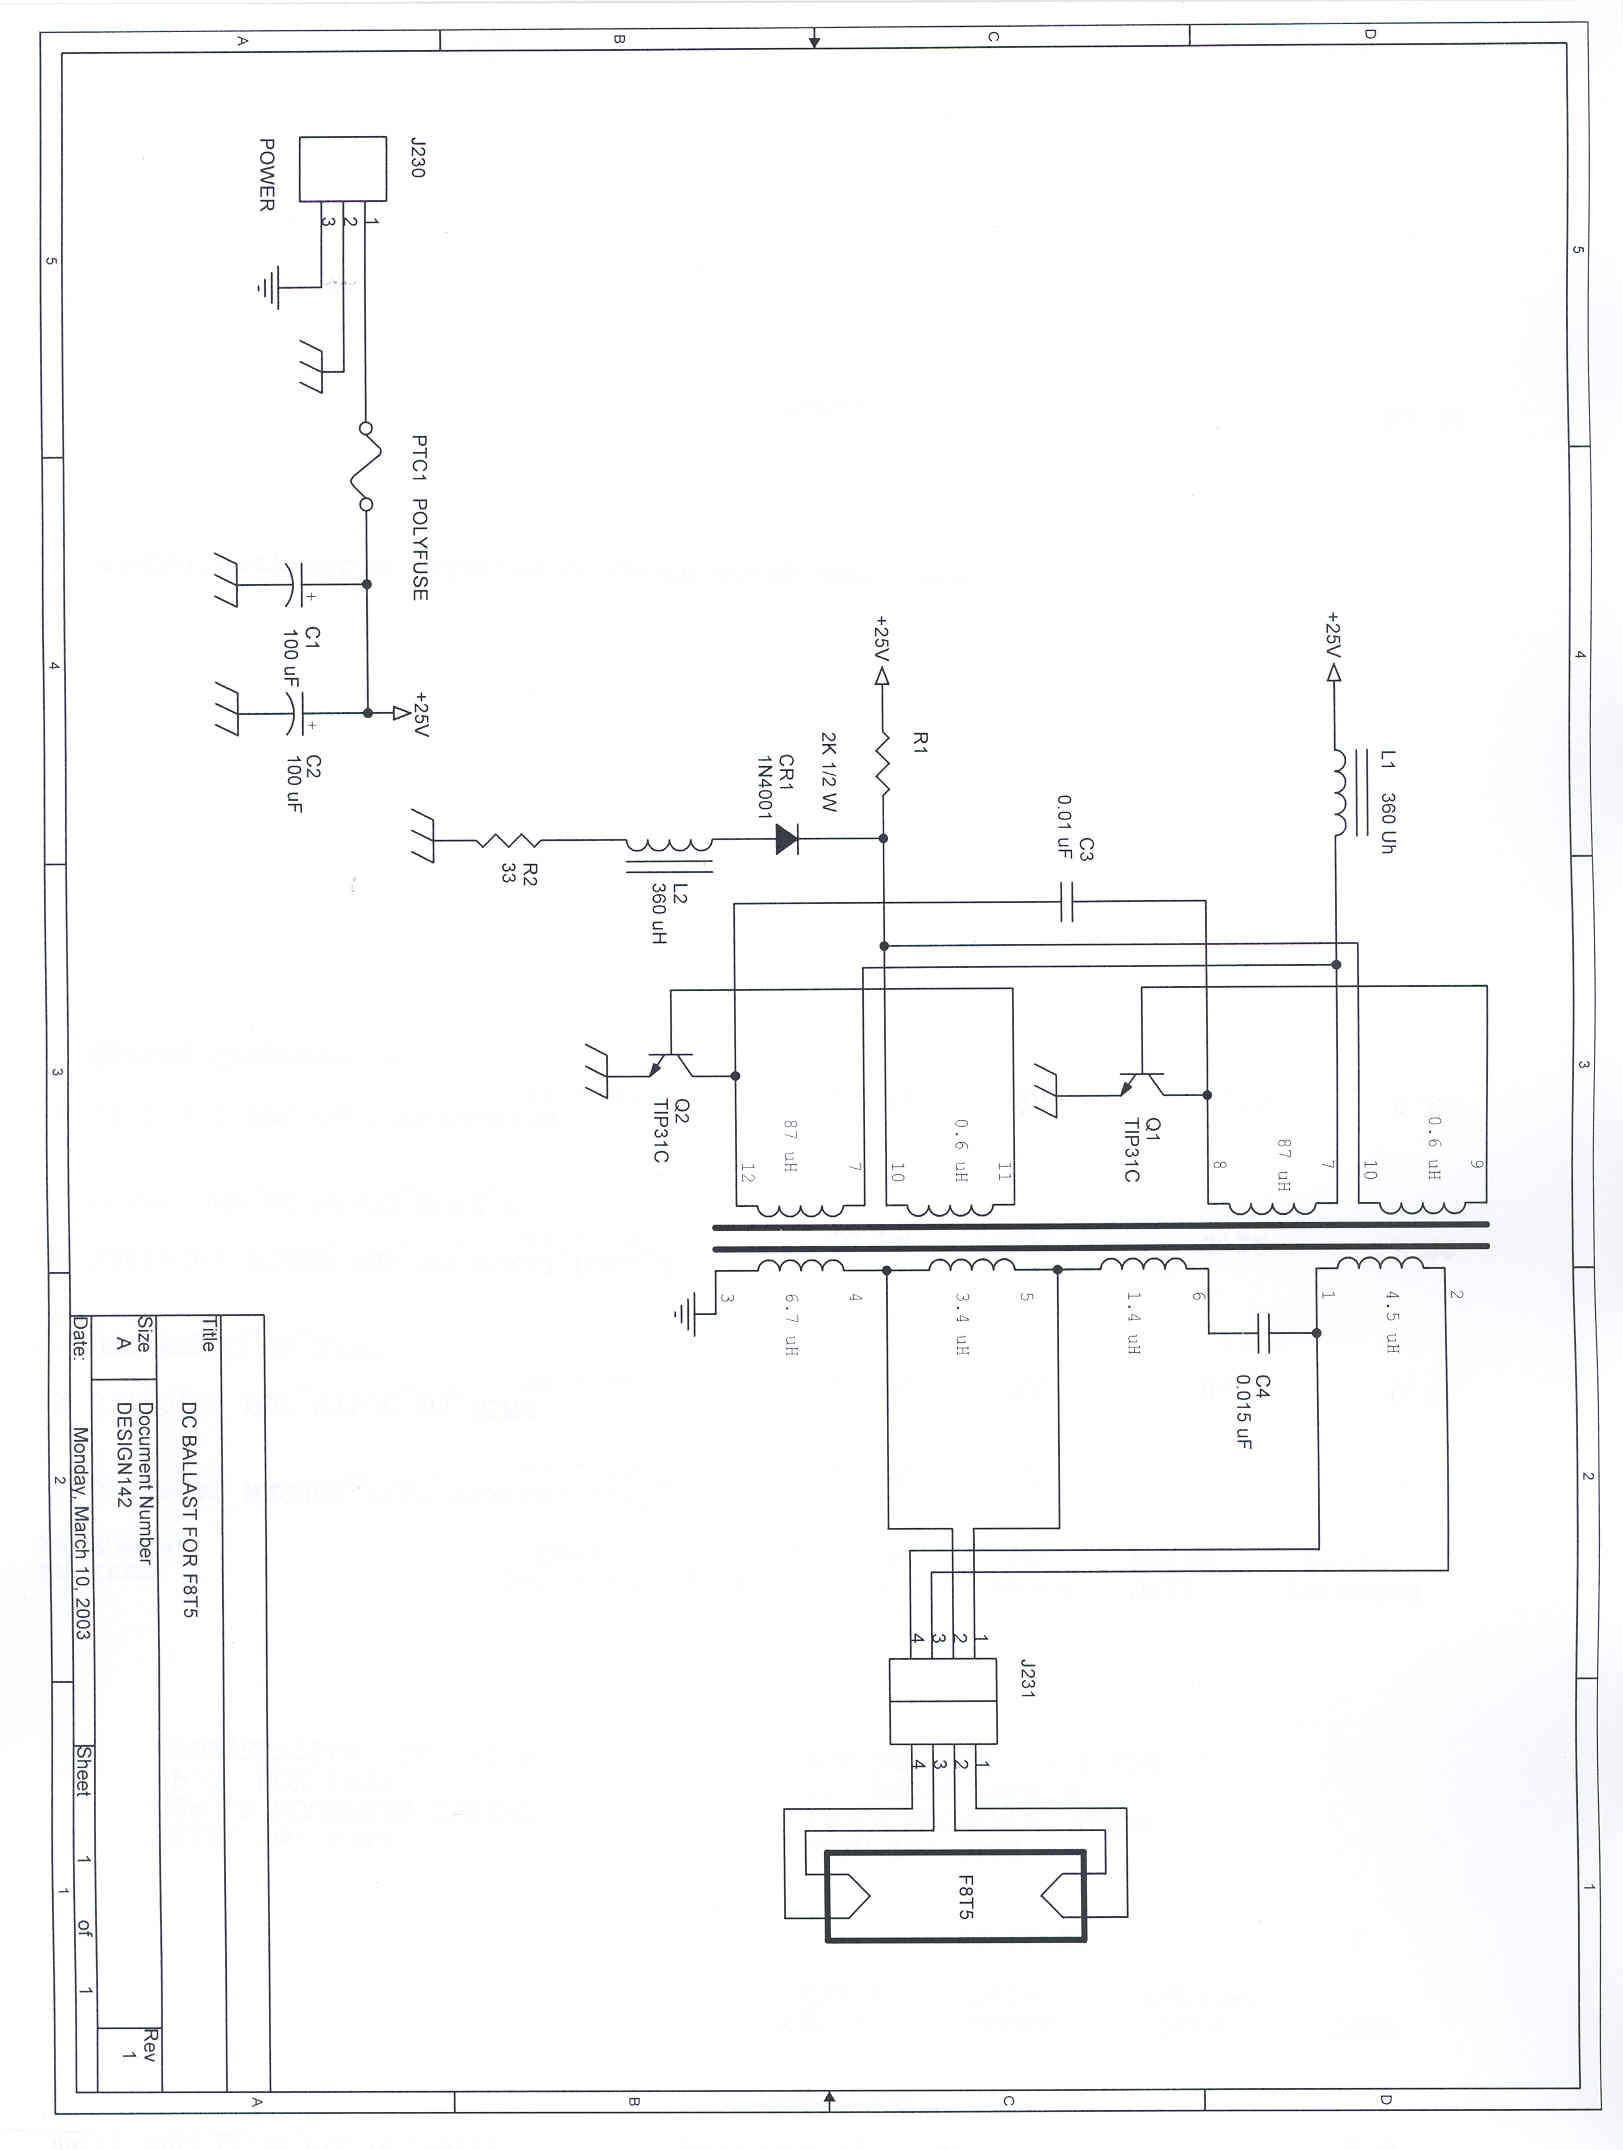 Igt Power Supply Diagram, Igt, Free Engine Image For User